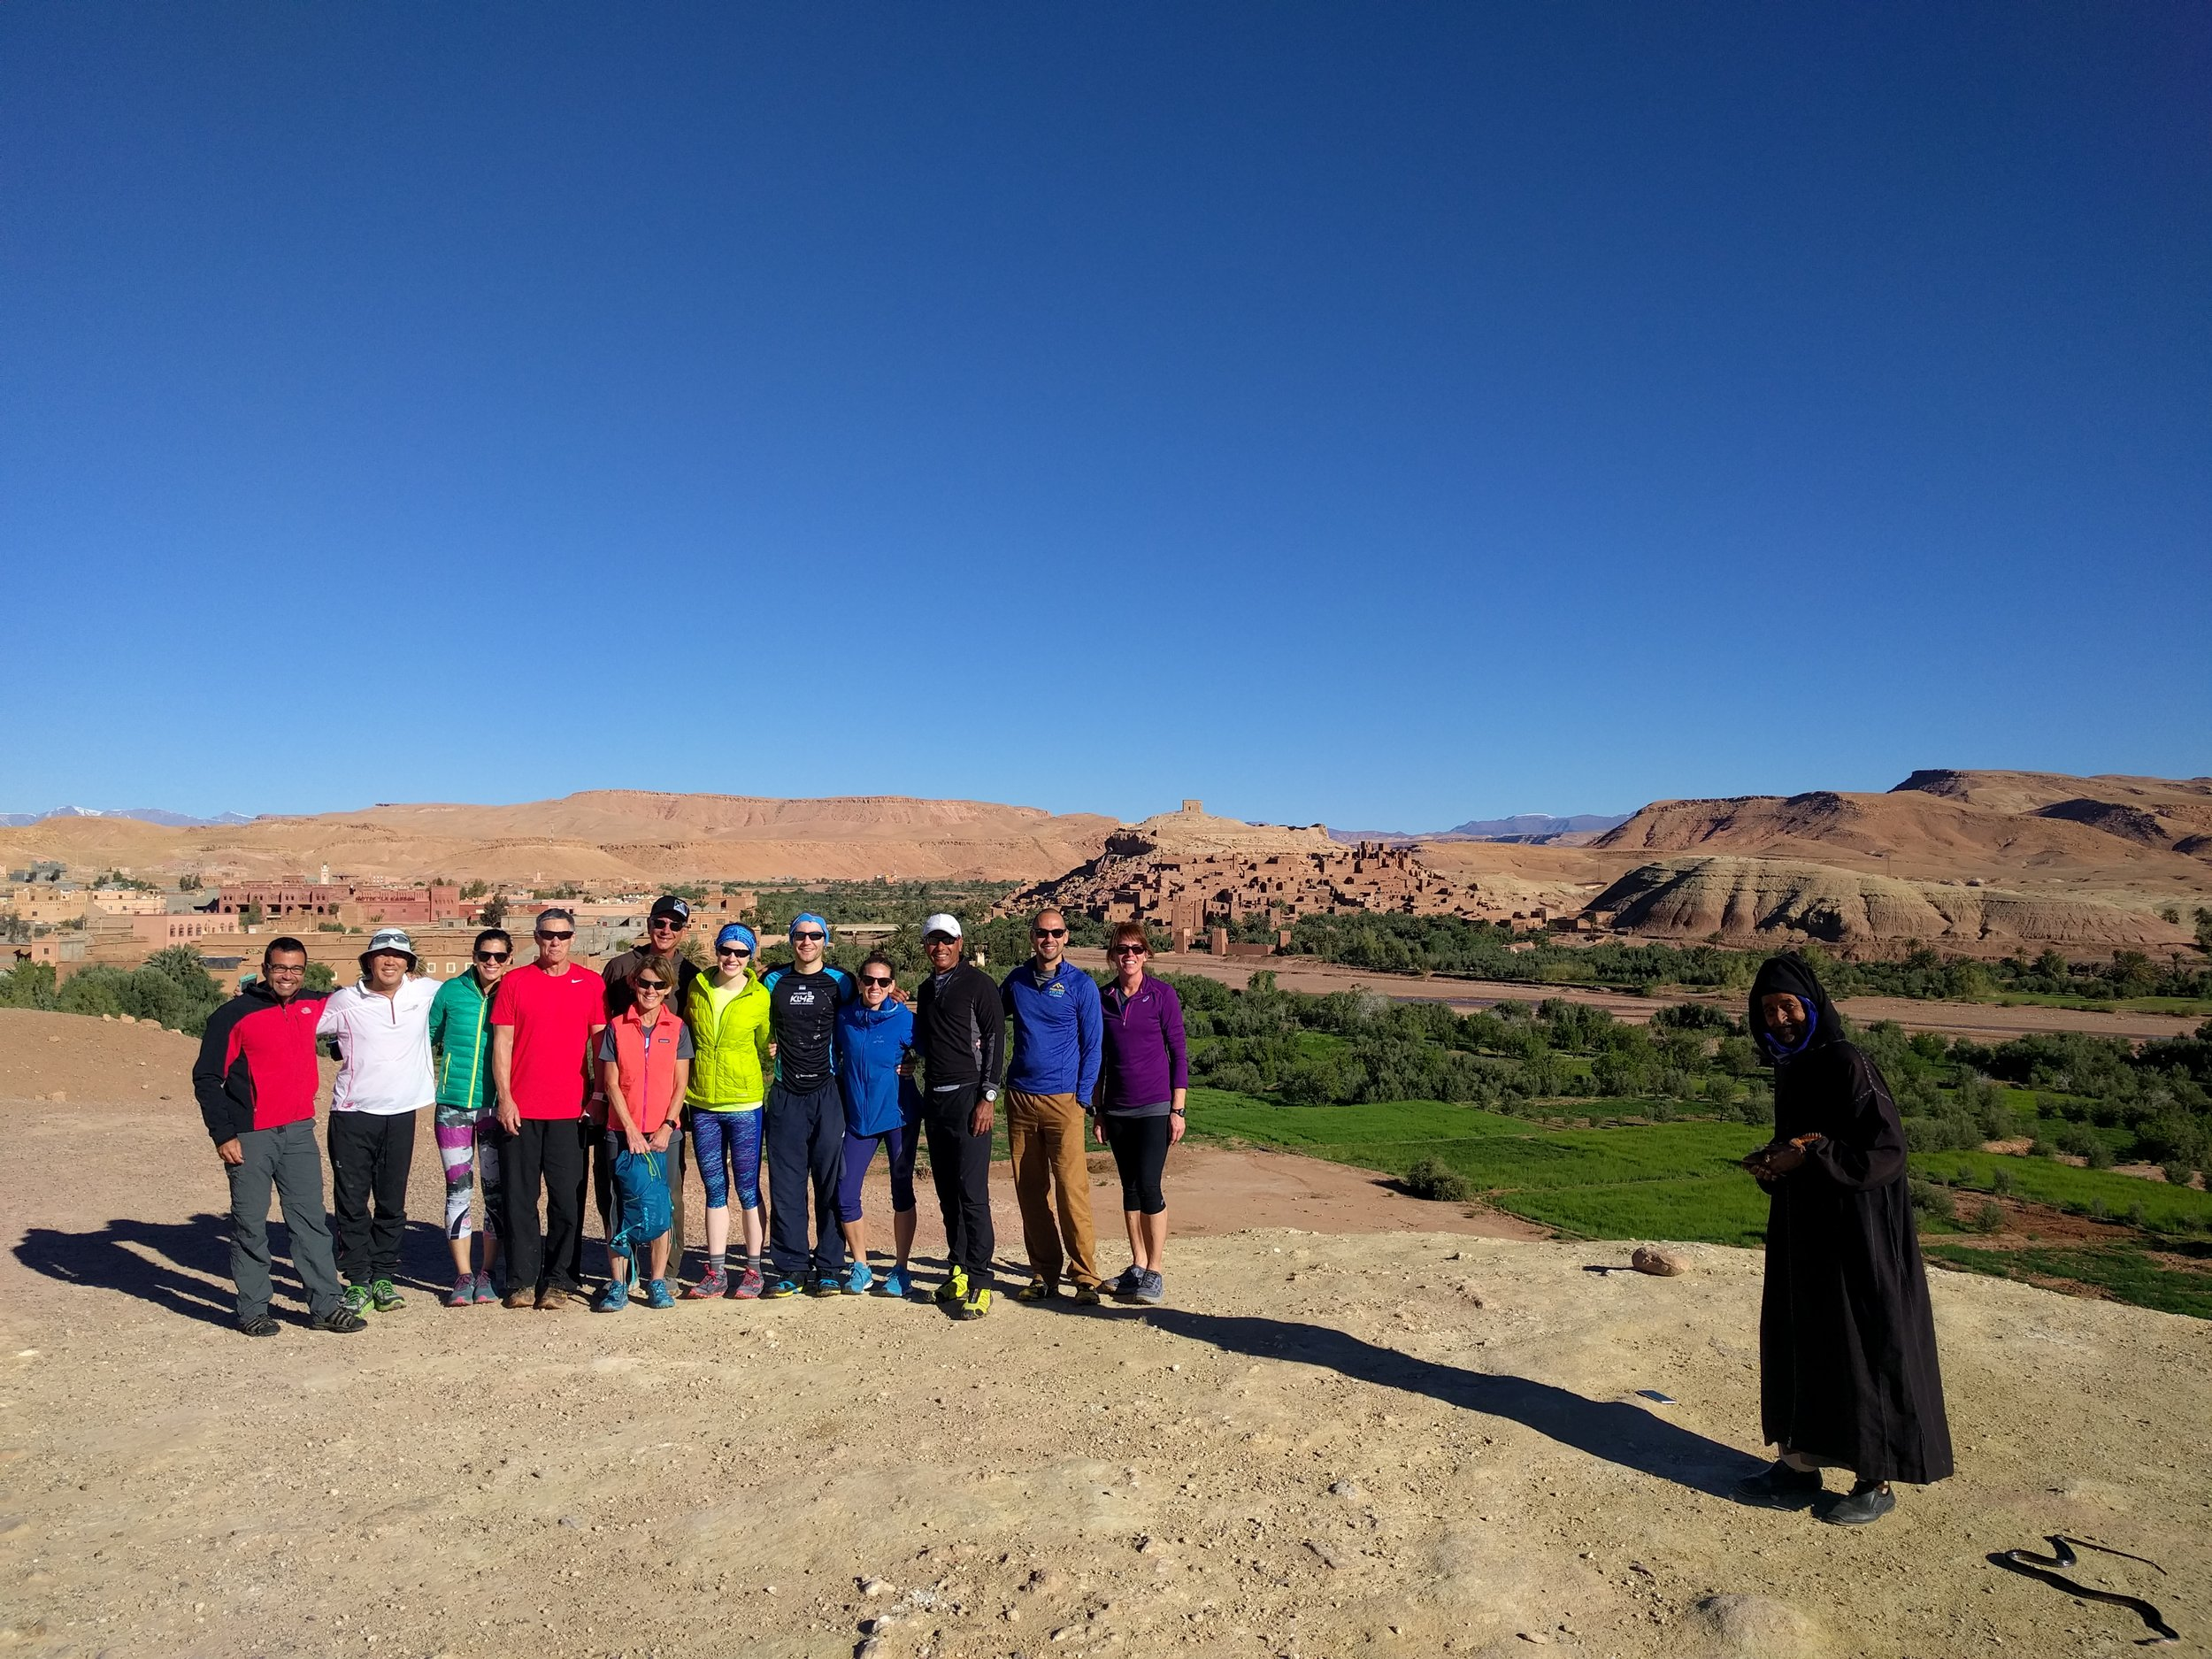 Our Endurance Adventure group in front of Ait Ben Haddou and lush green fields. Local snake charmer approves.